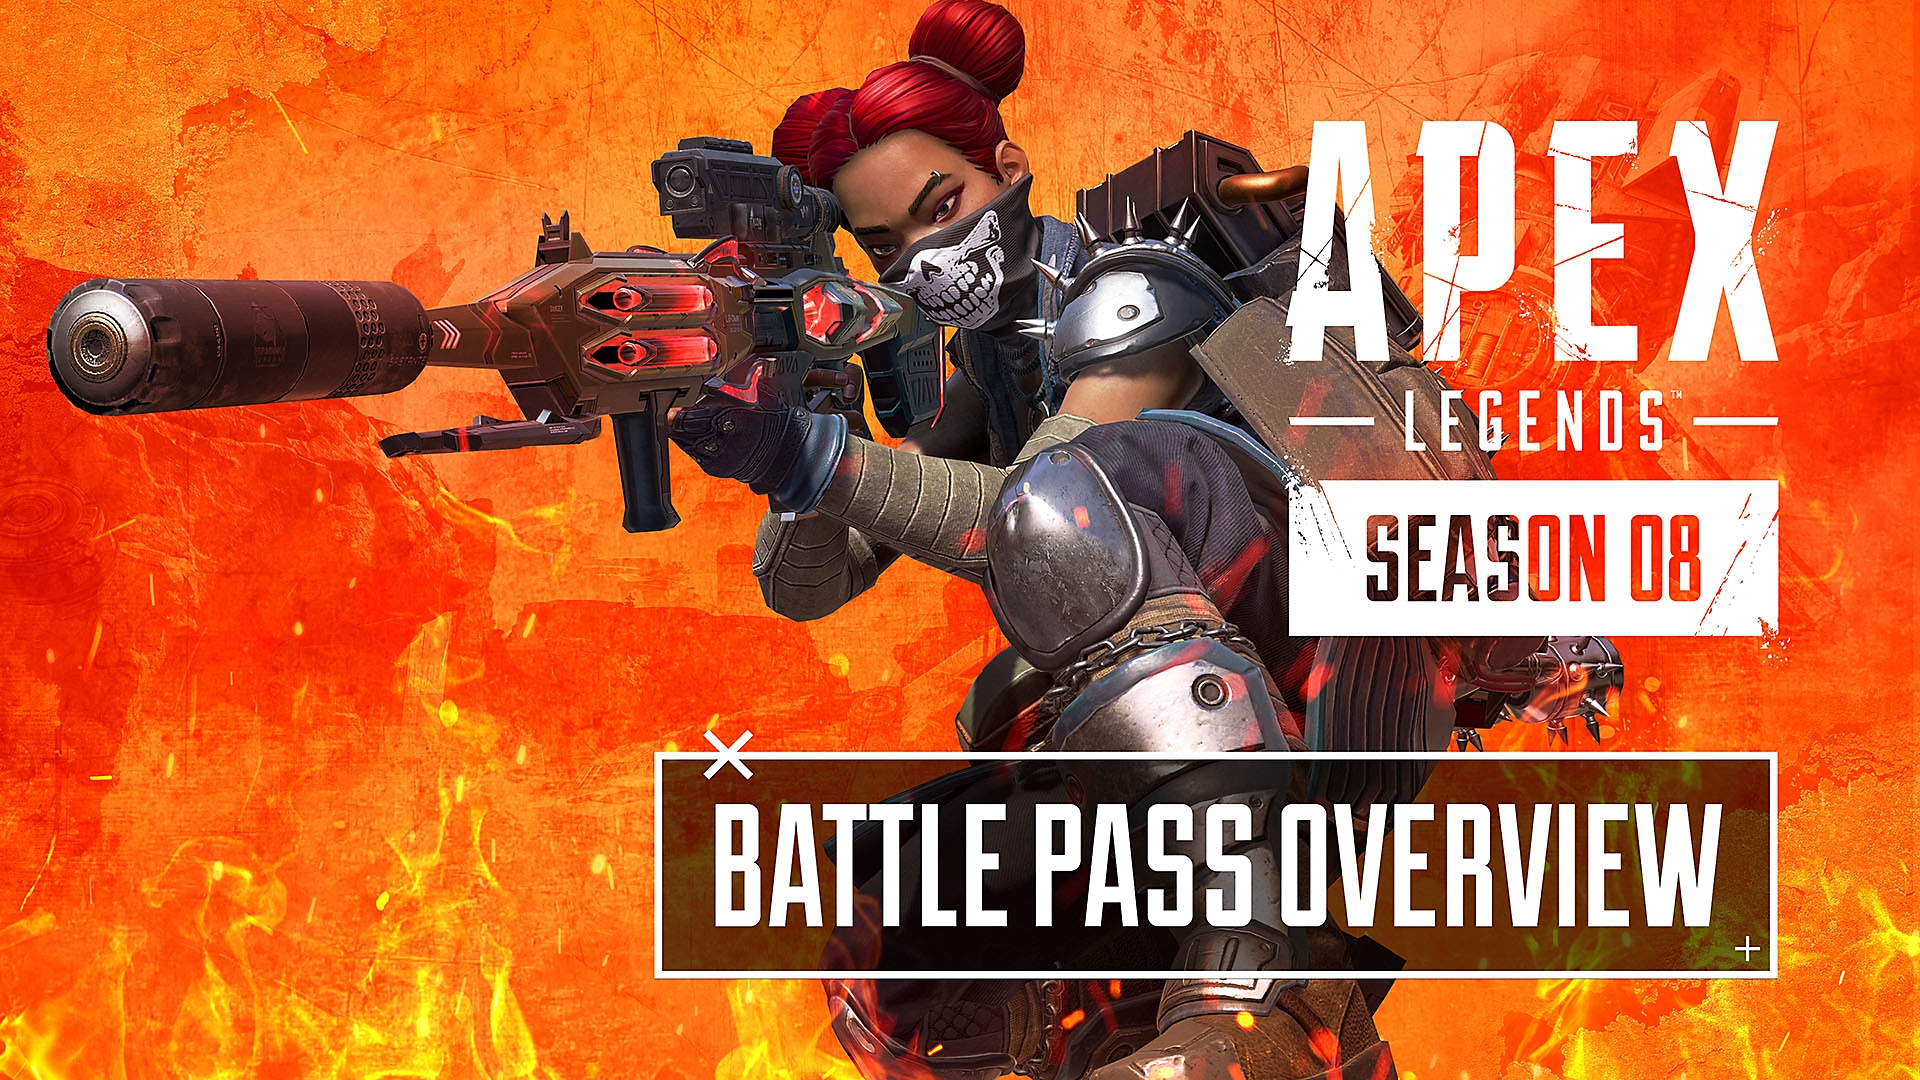 Apex Legends - Season 8 Battle Pass overview trailer